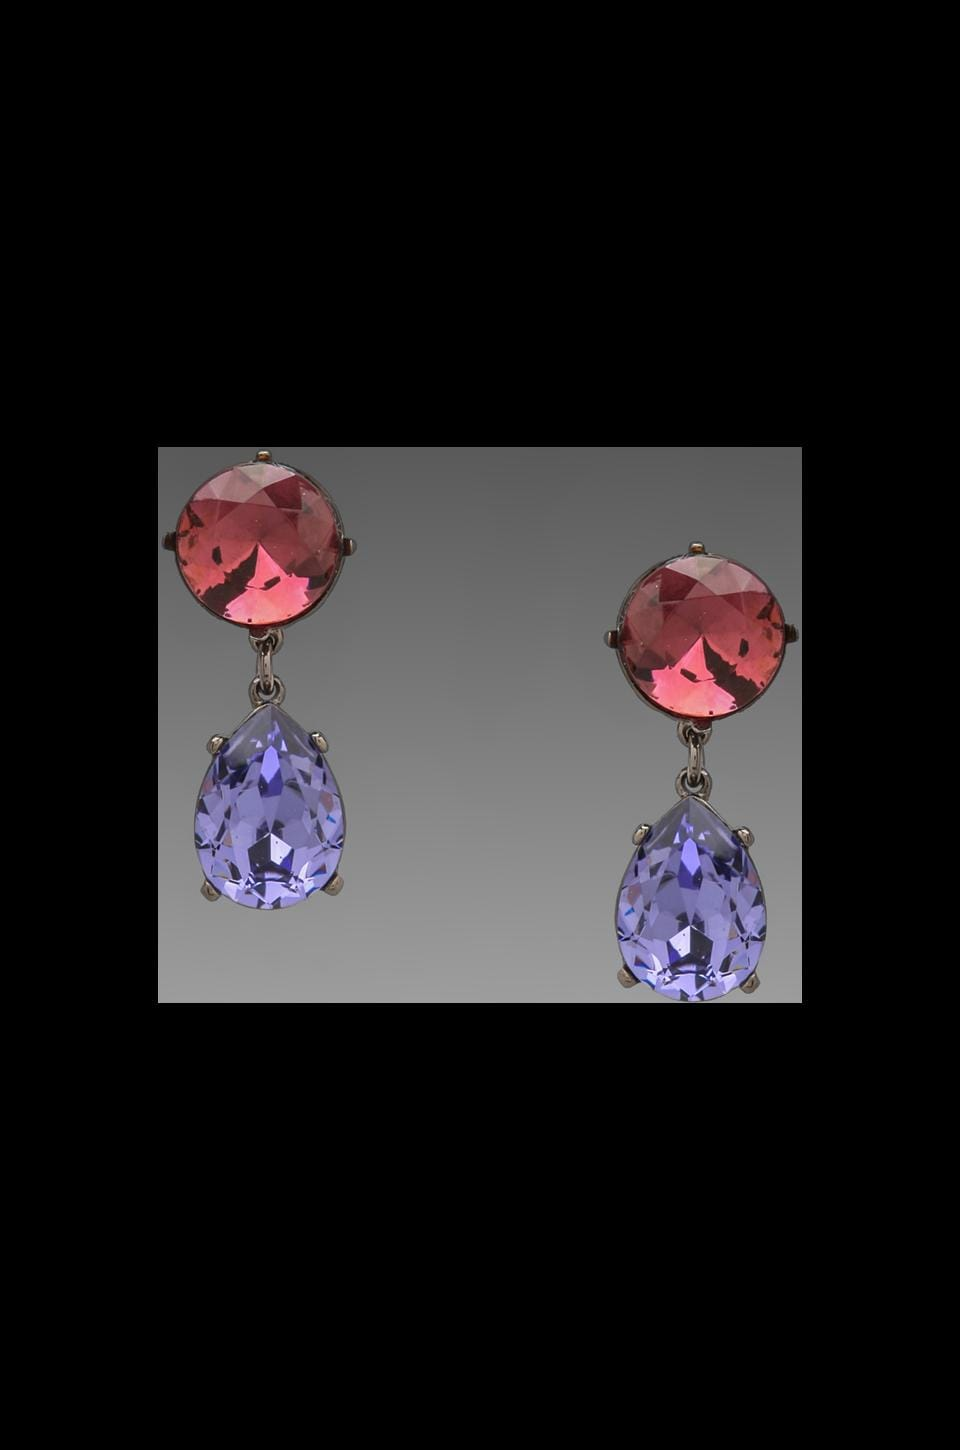 Kenneth Jay Lane Teardrop Earring in Amy/Tnz